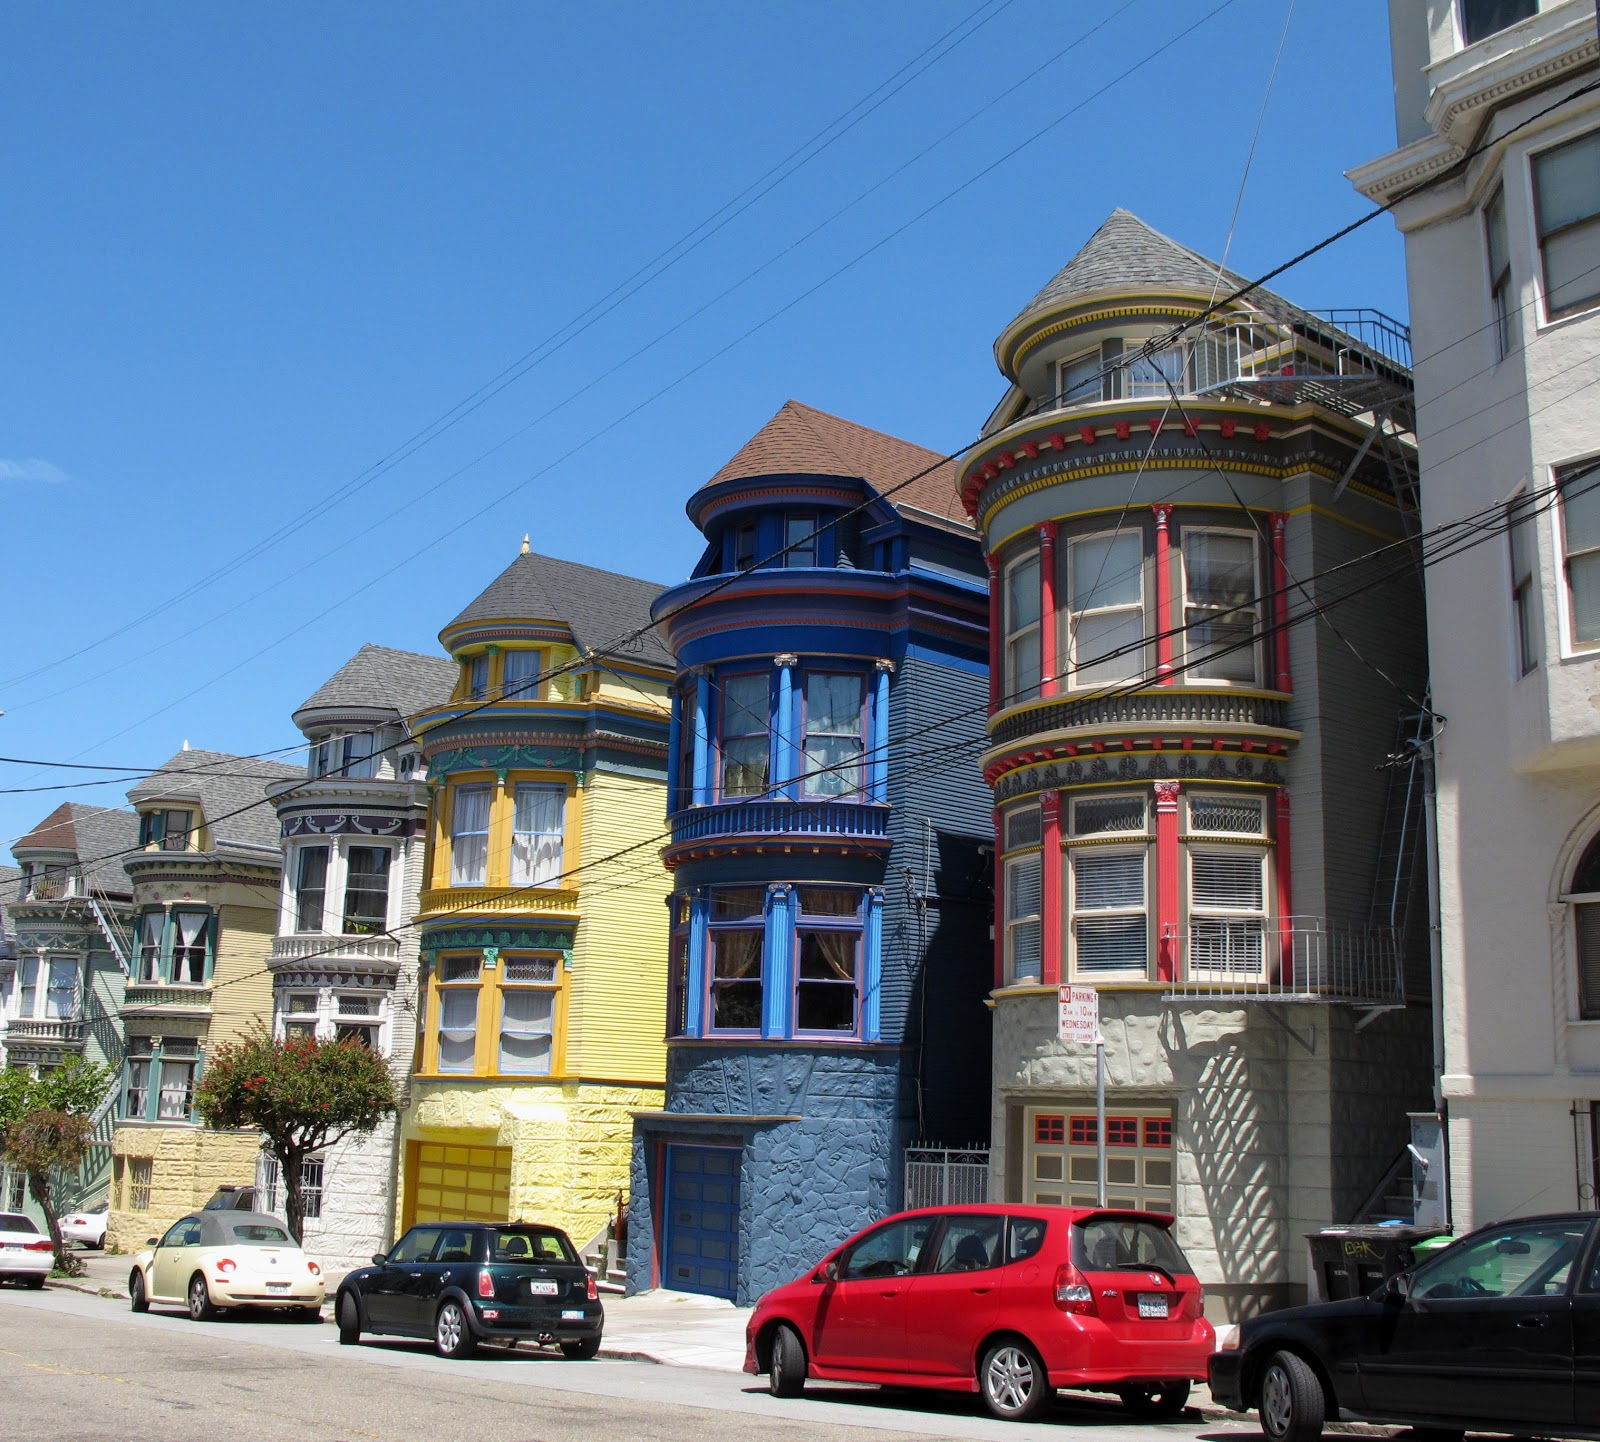 Wooster Square Daily Photo: The Haight